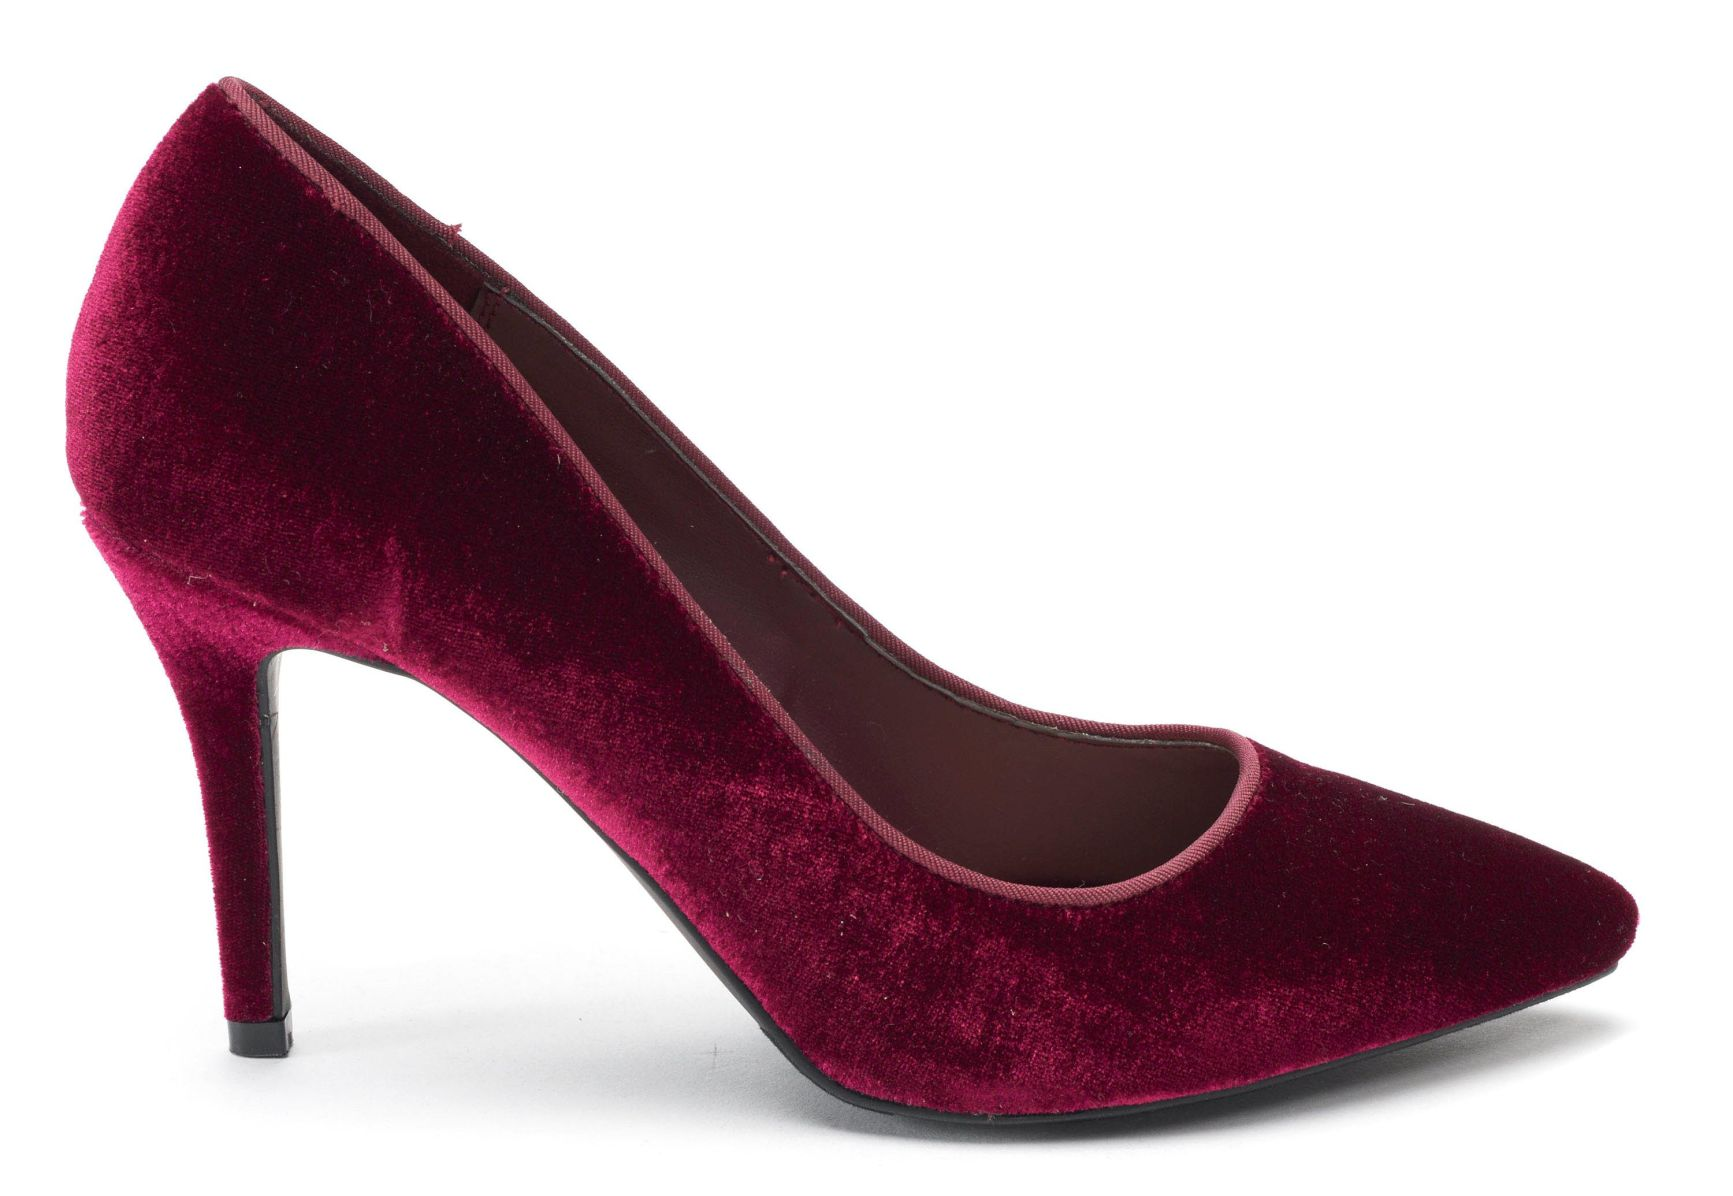 Kick up your heels in red shoes and